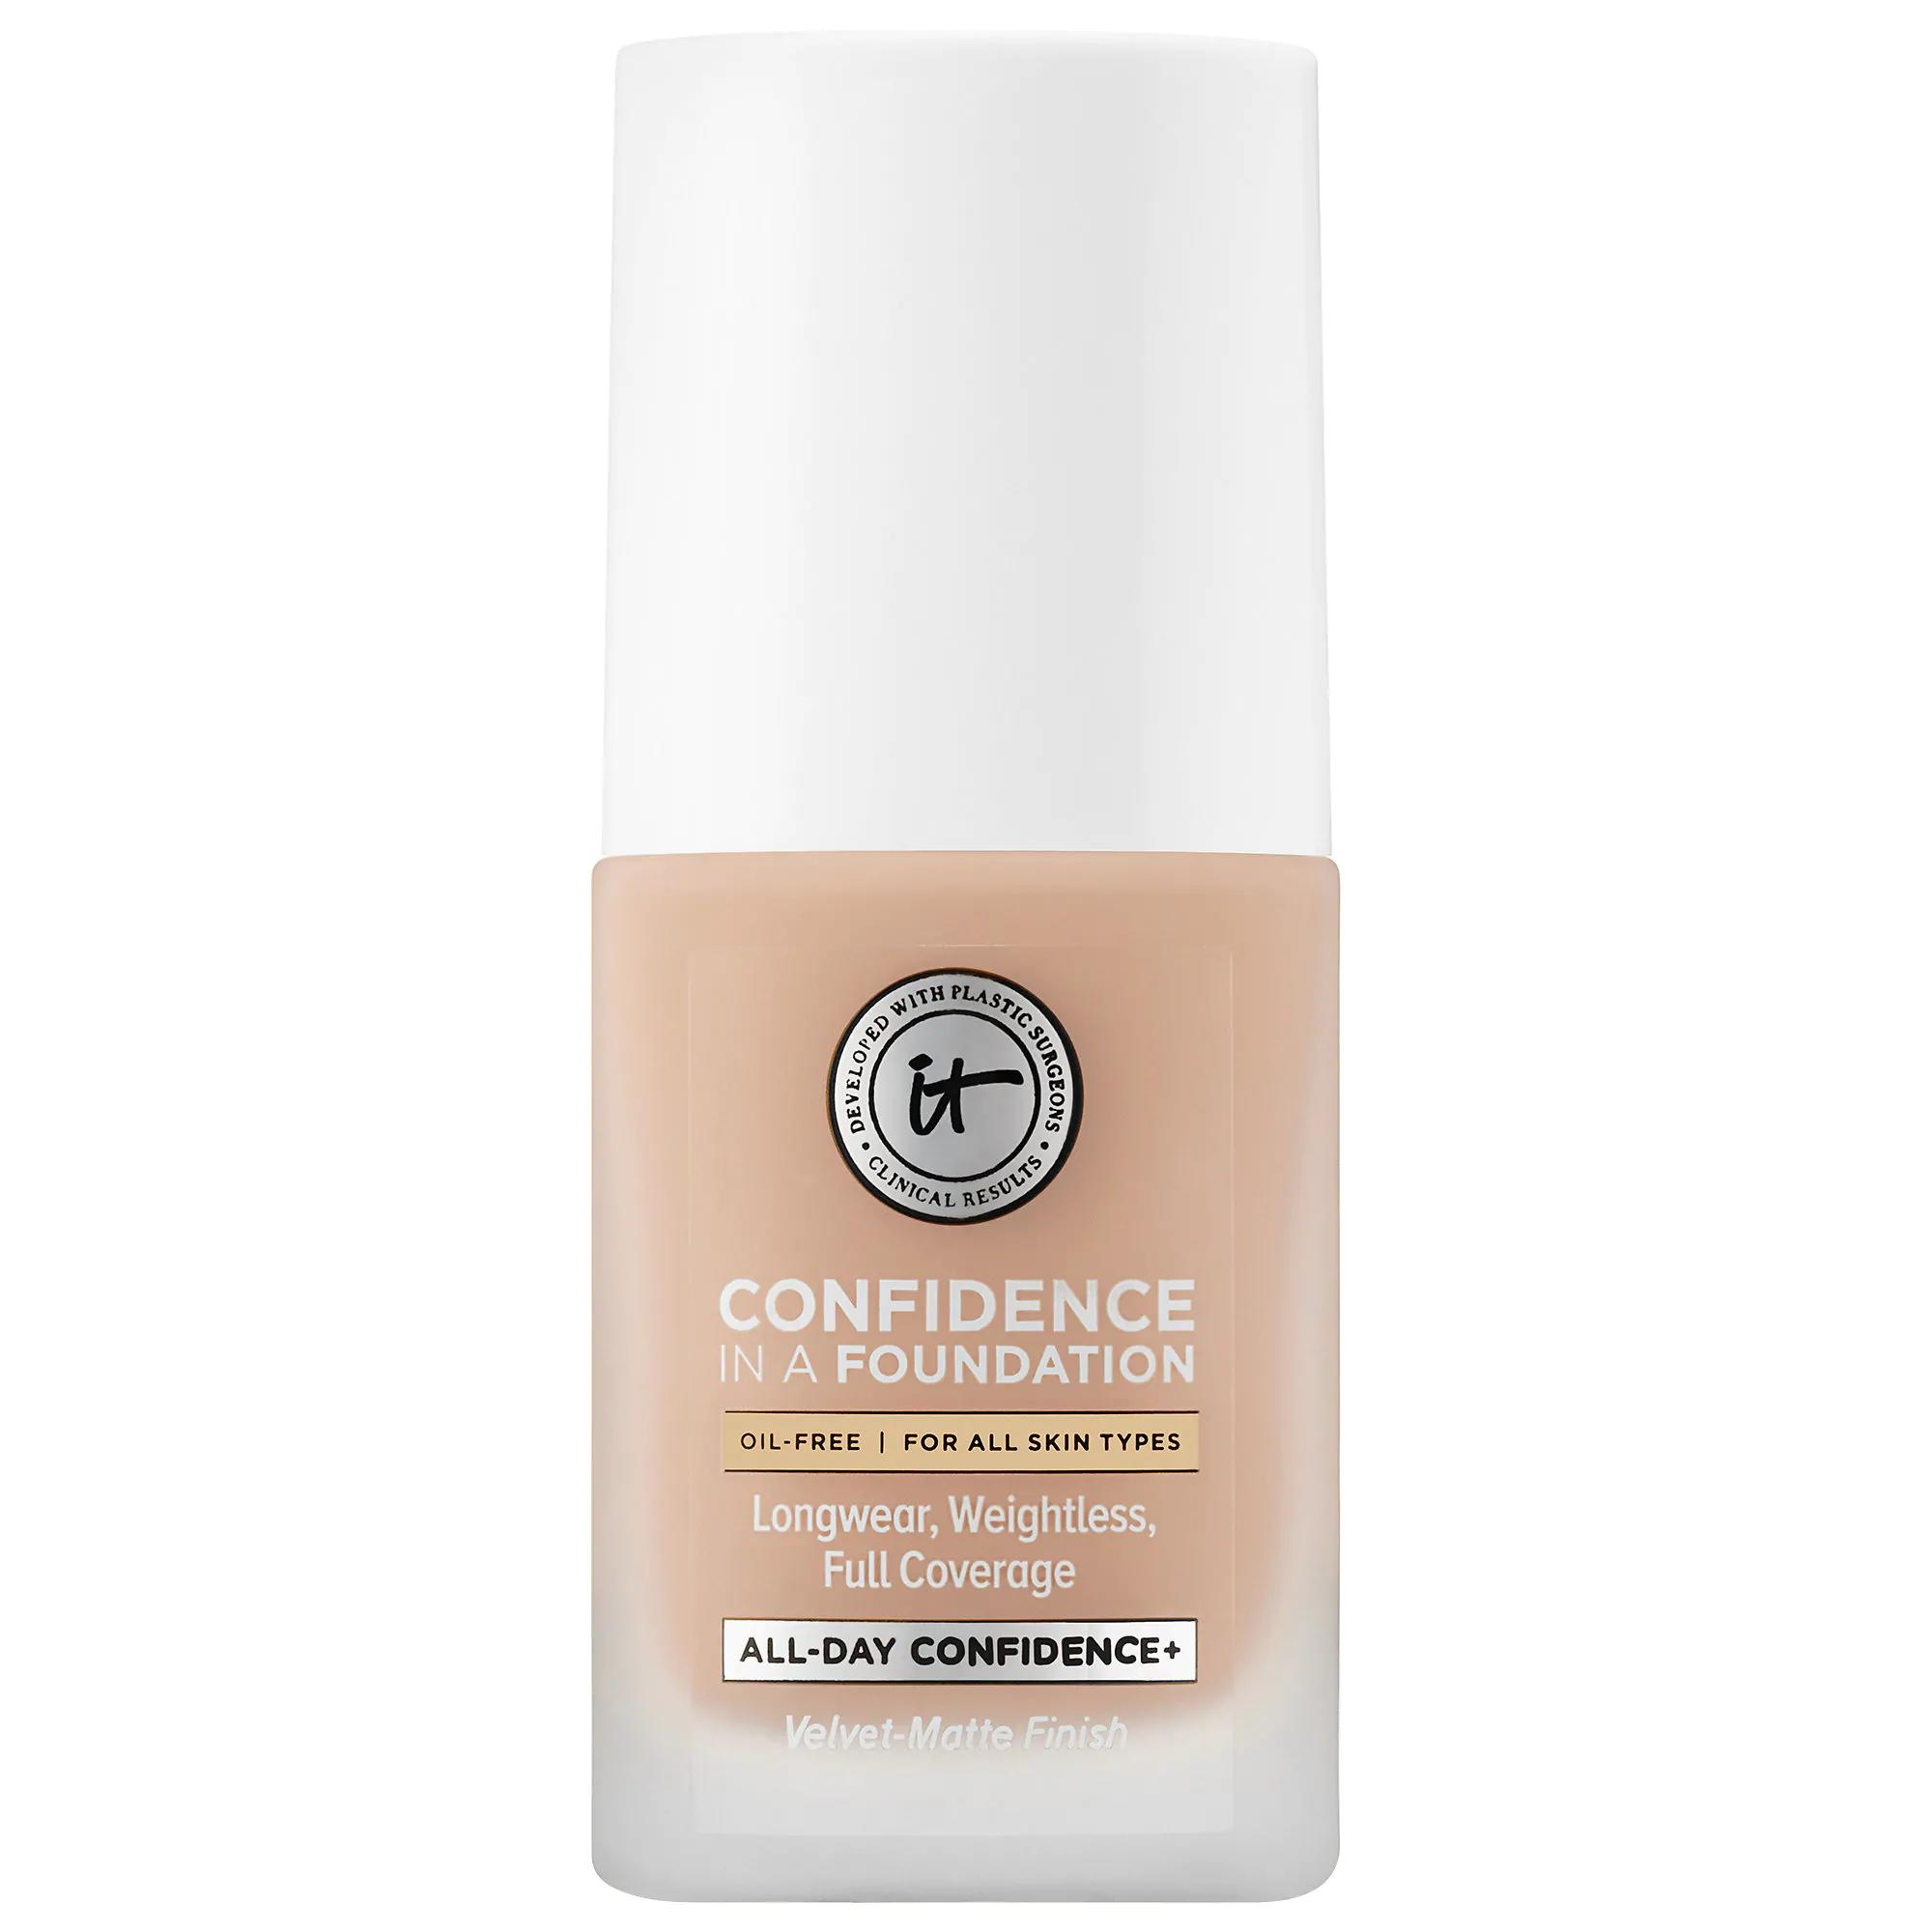 IT Cosmetics Confidence in a Foundation Light Beige 125